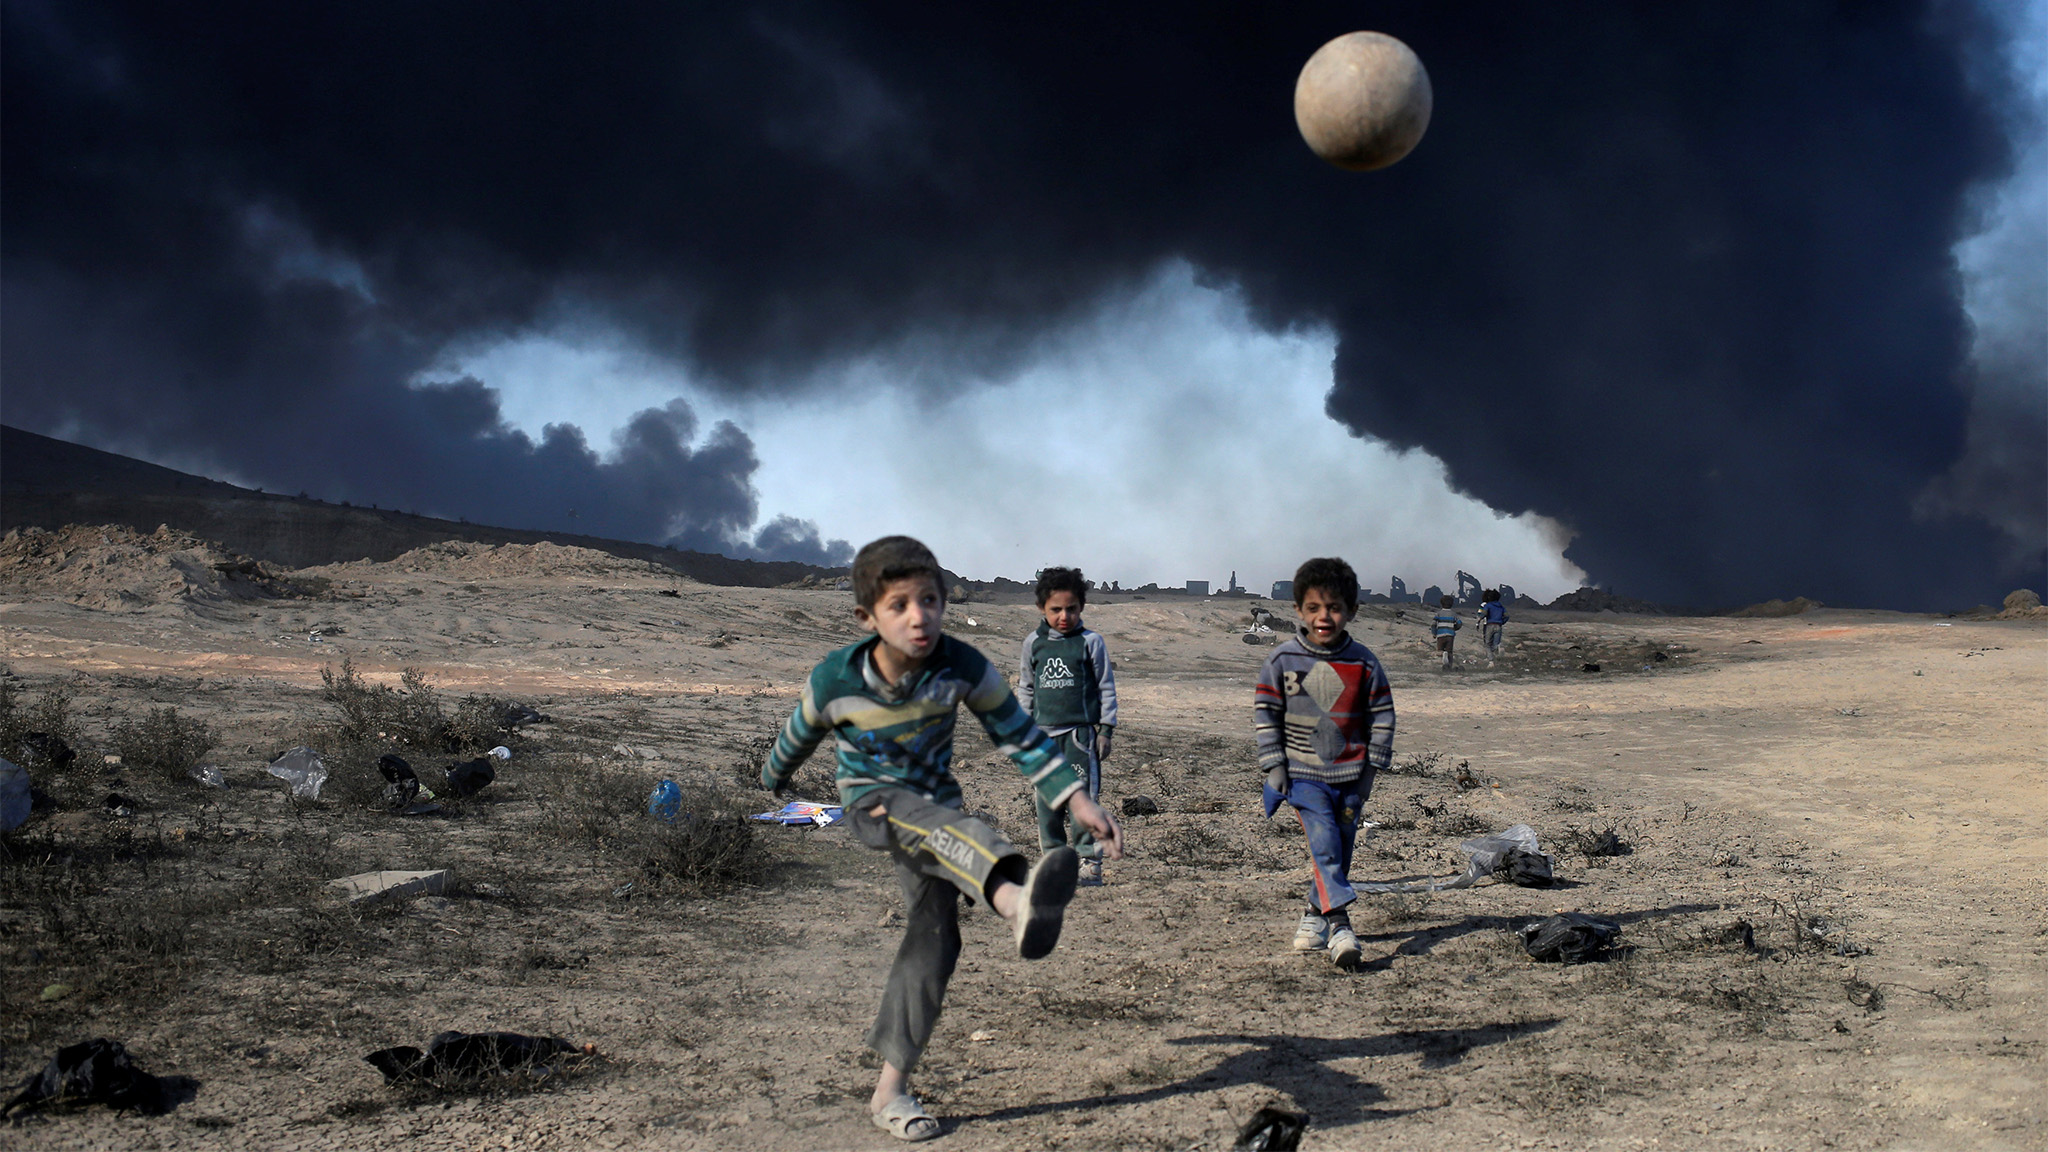 Boys play with a ball in front of oilfields burned by Islamic State fighters in Qayyara